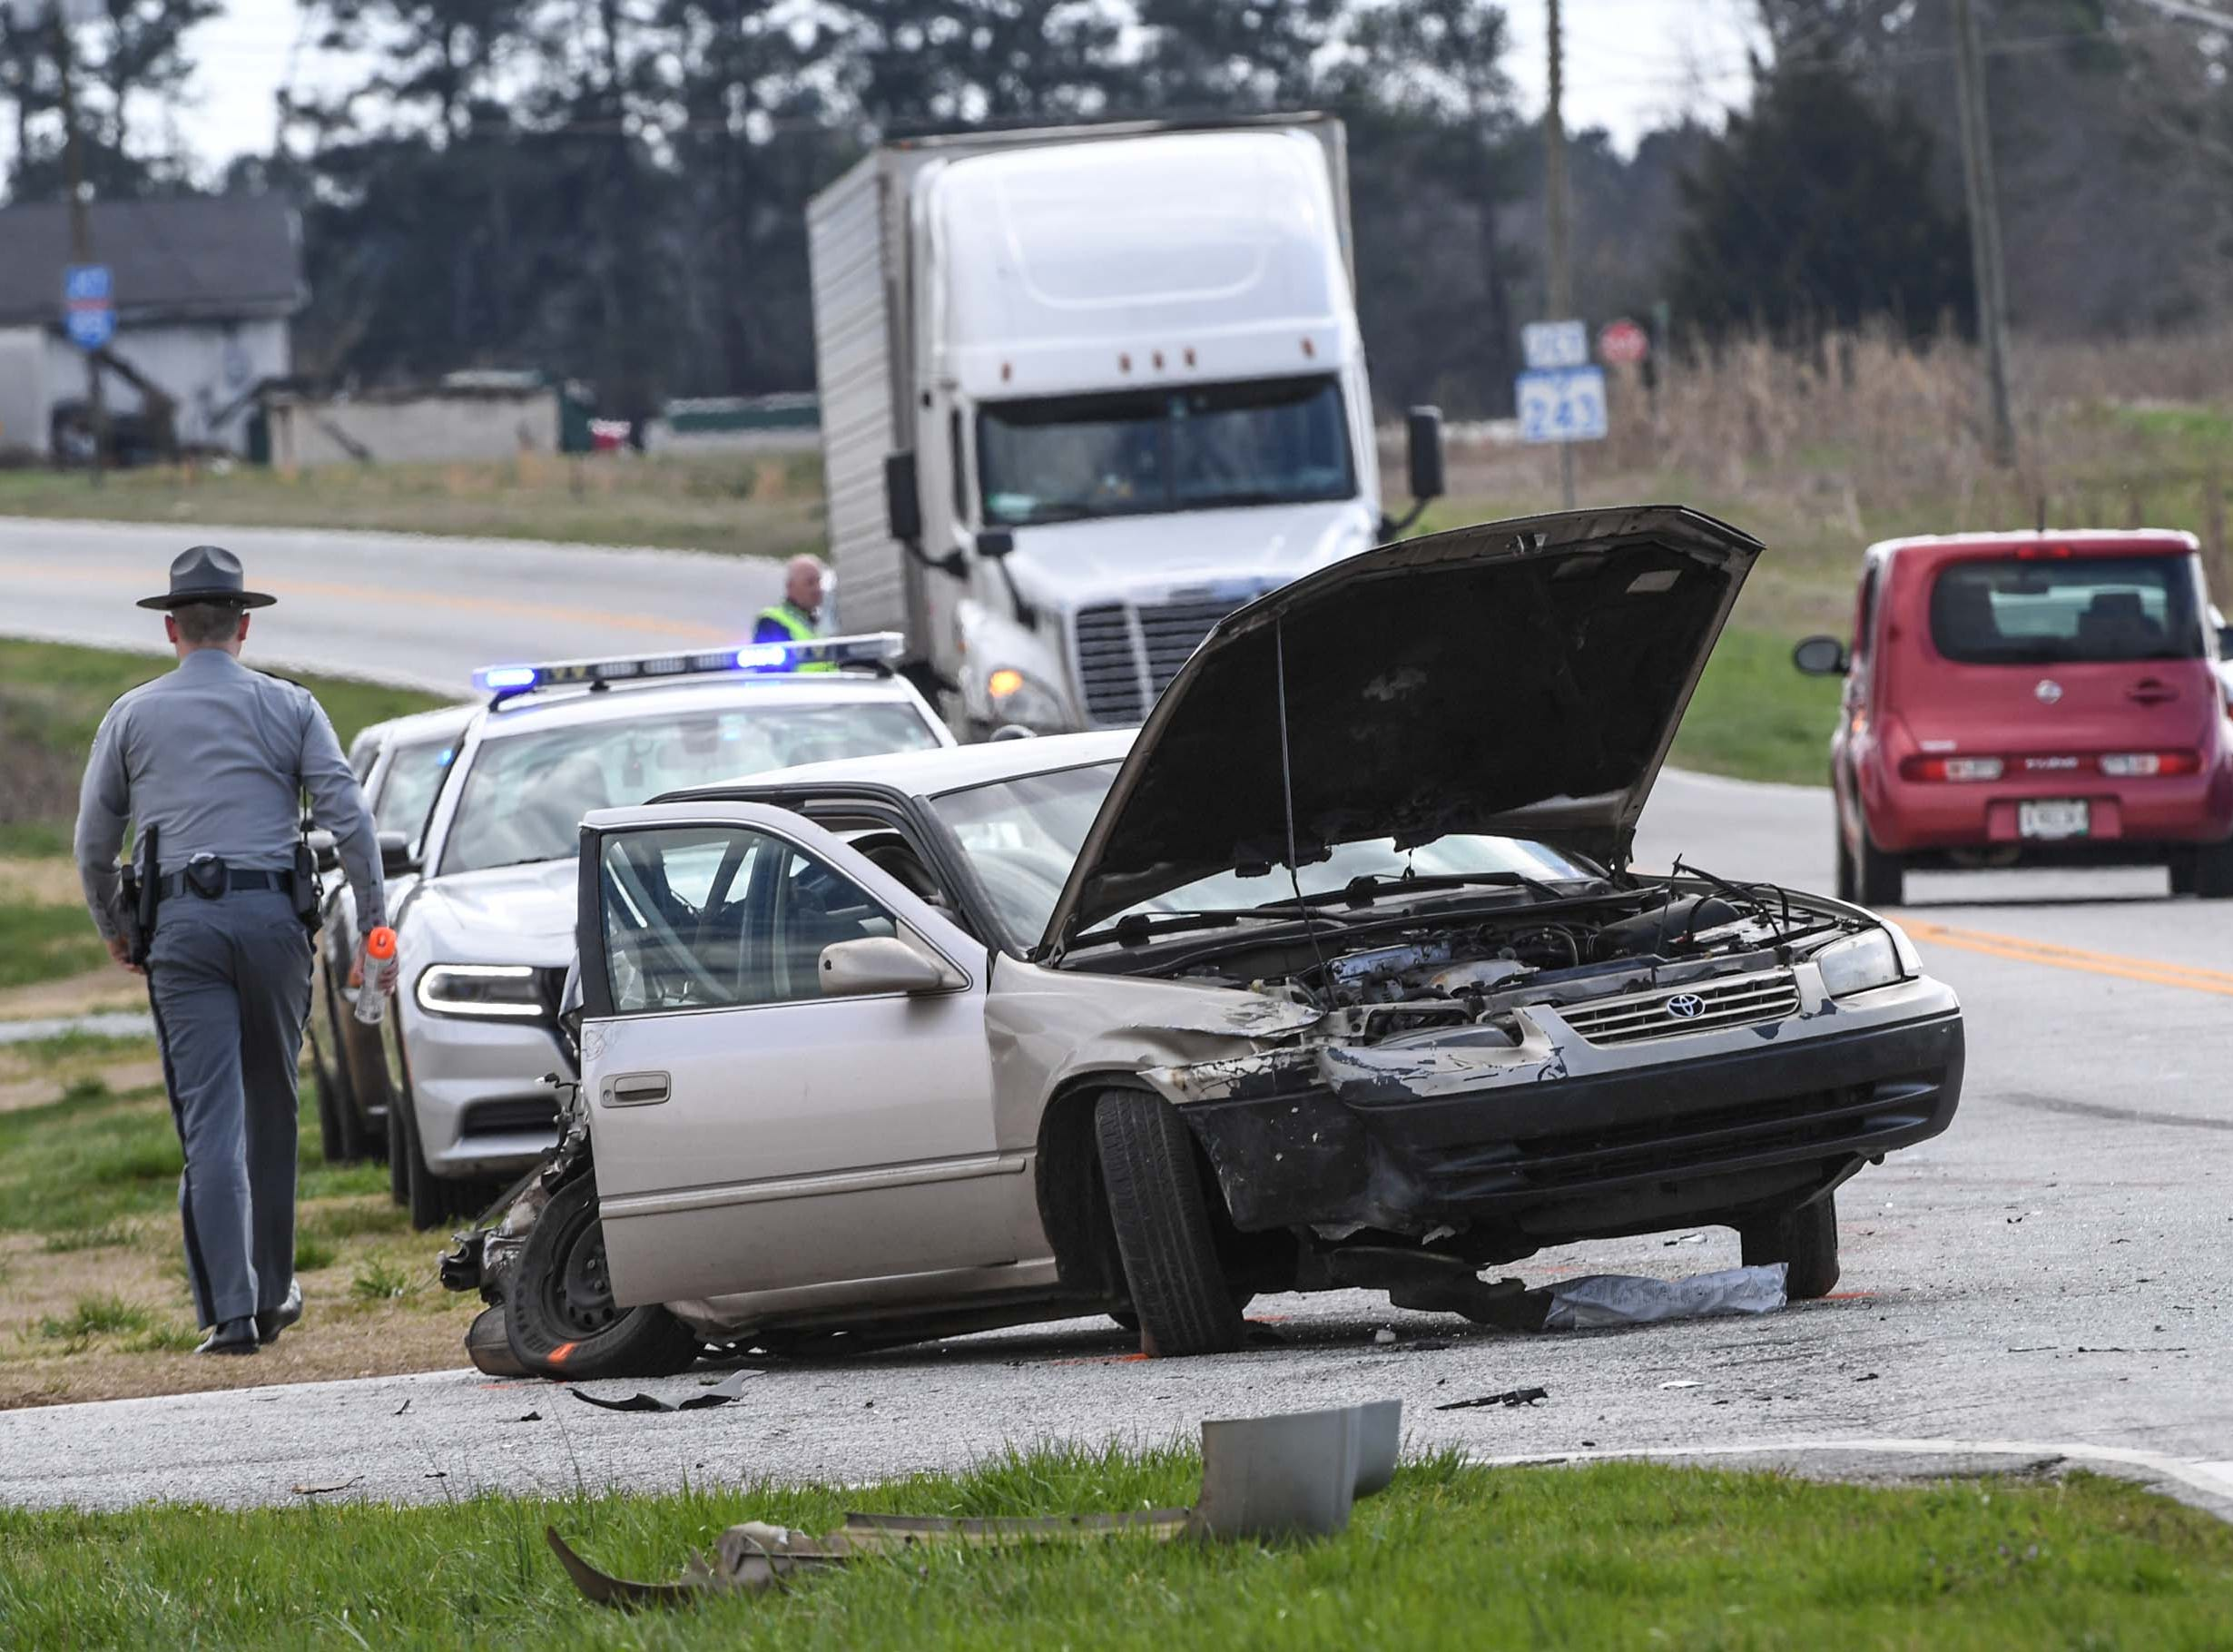 The scene of a three-car accident on state highway 24 just below Townville in front of Oakdale Baptist Church Tuesday.  The driver of the Camry was taken by ambulance to AnMed Hospital.